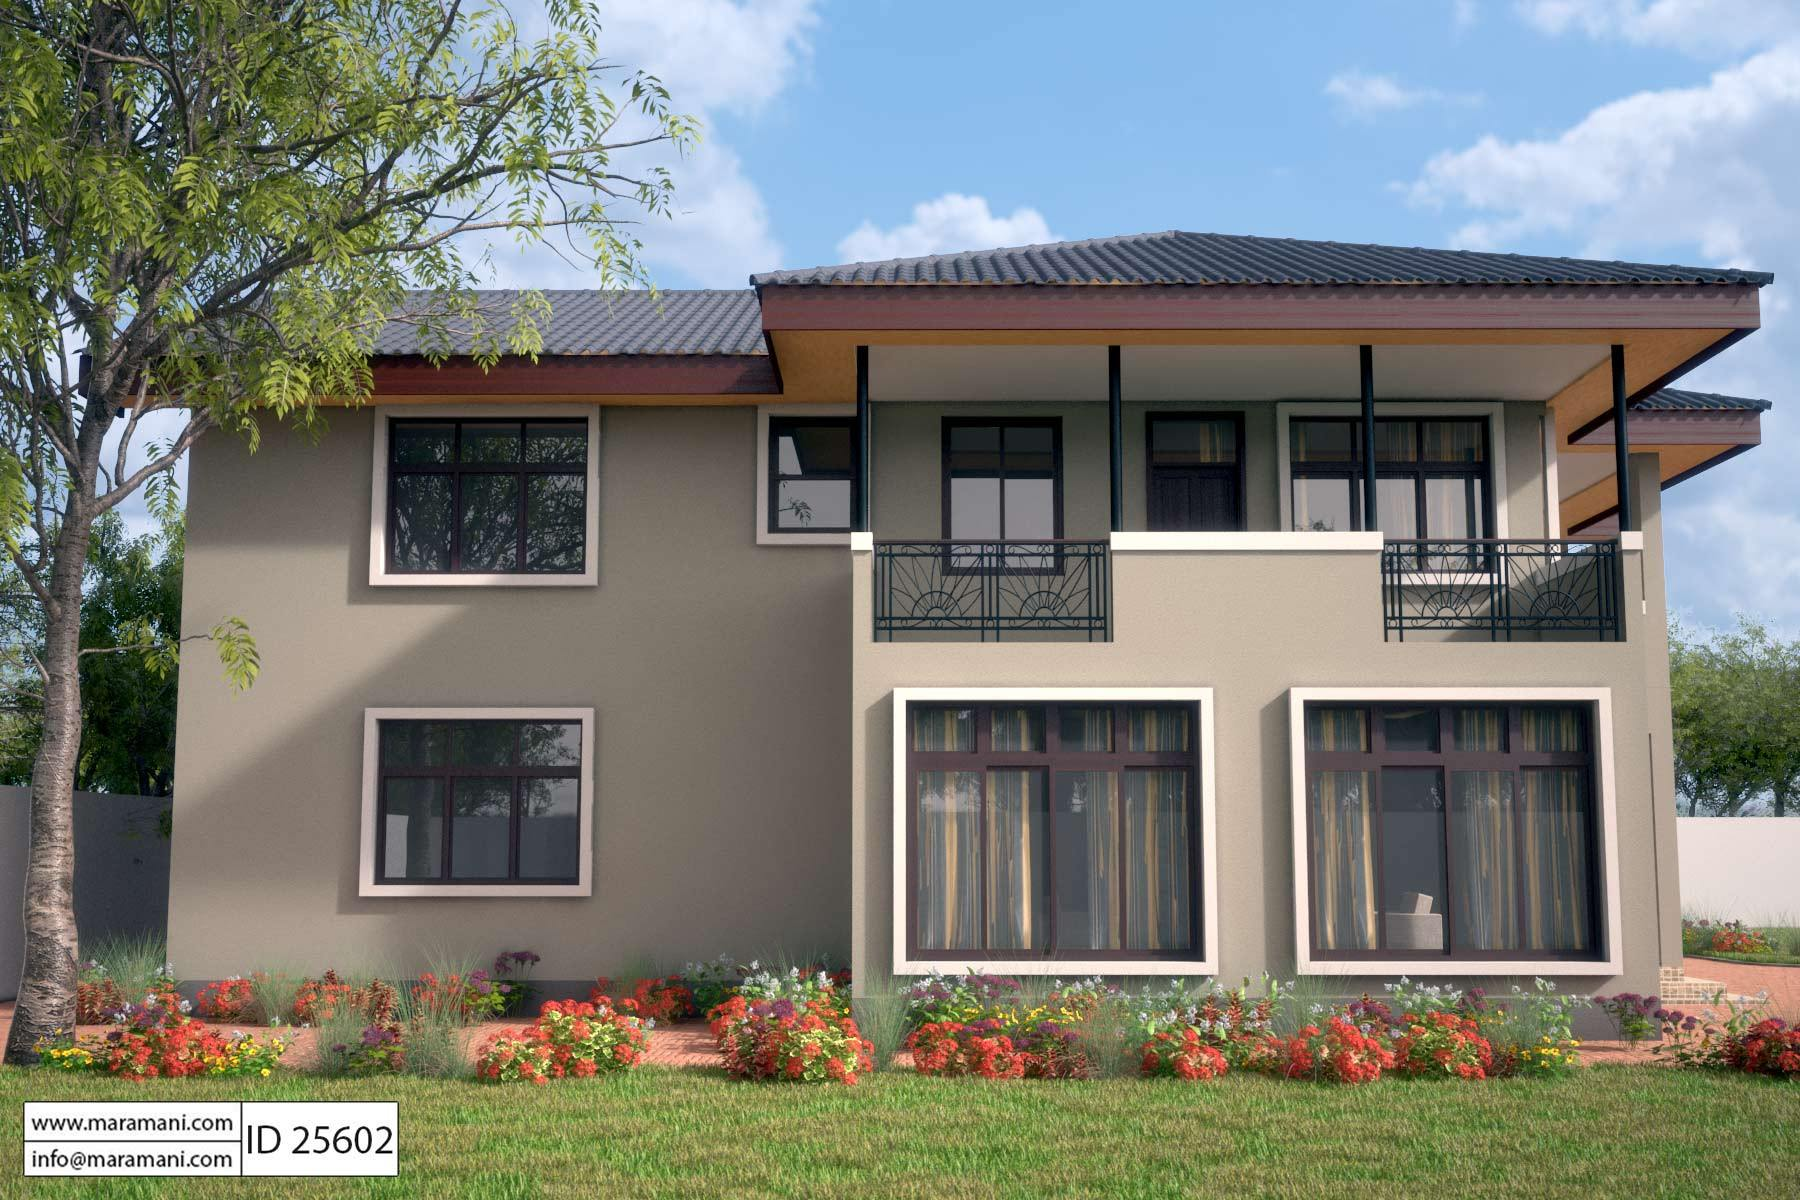 5 bedroom house design id 25602 house plans by maramani - House of bedrooms ...